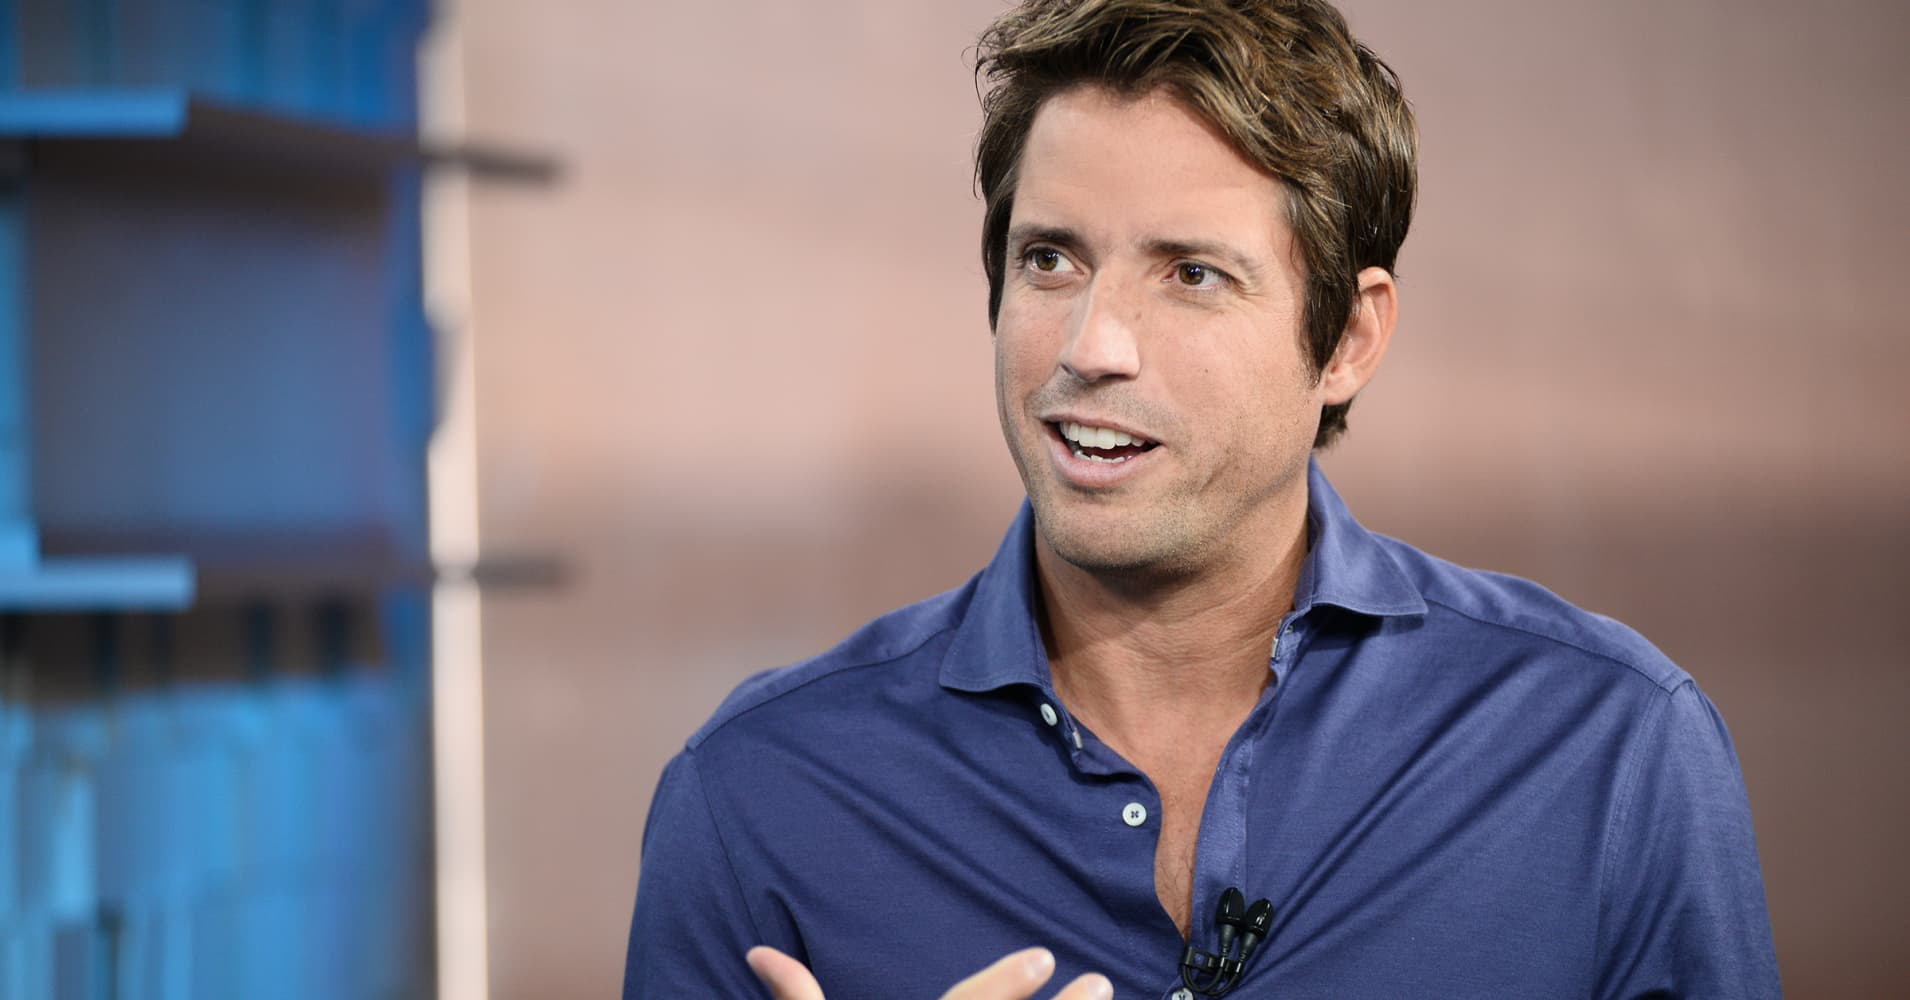 GoPro CEO defends company as stock drops 3%